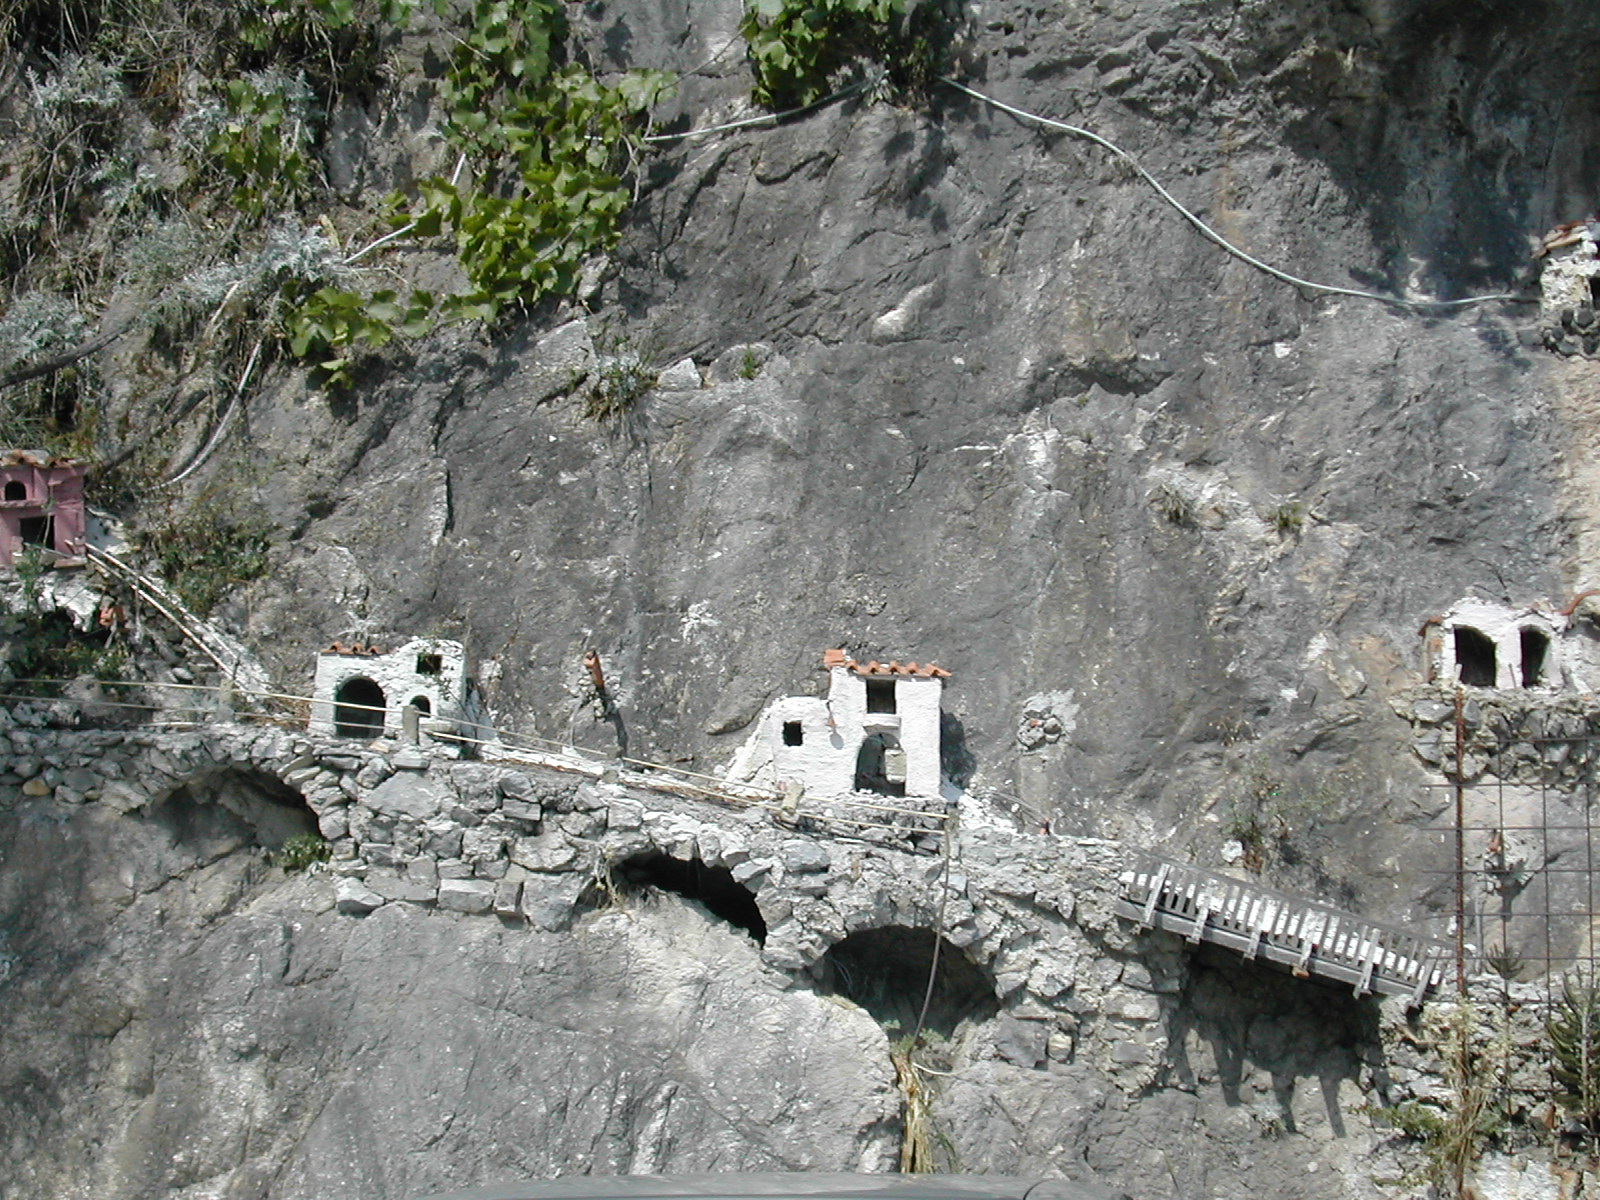 Miniature houses built into the cliff face in Praiano